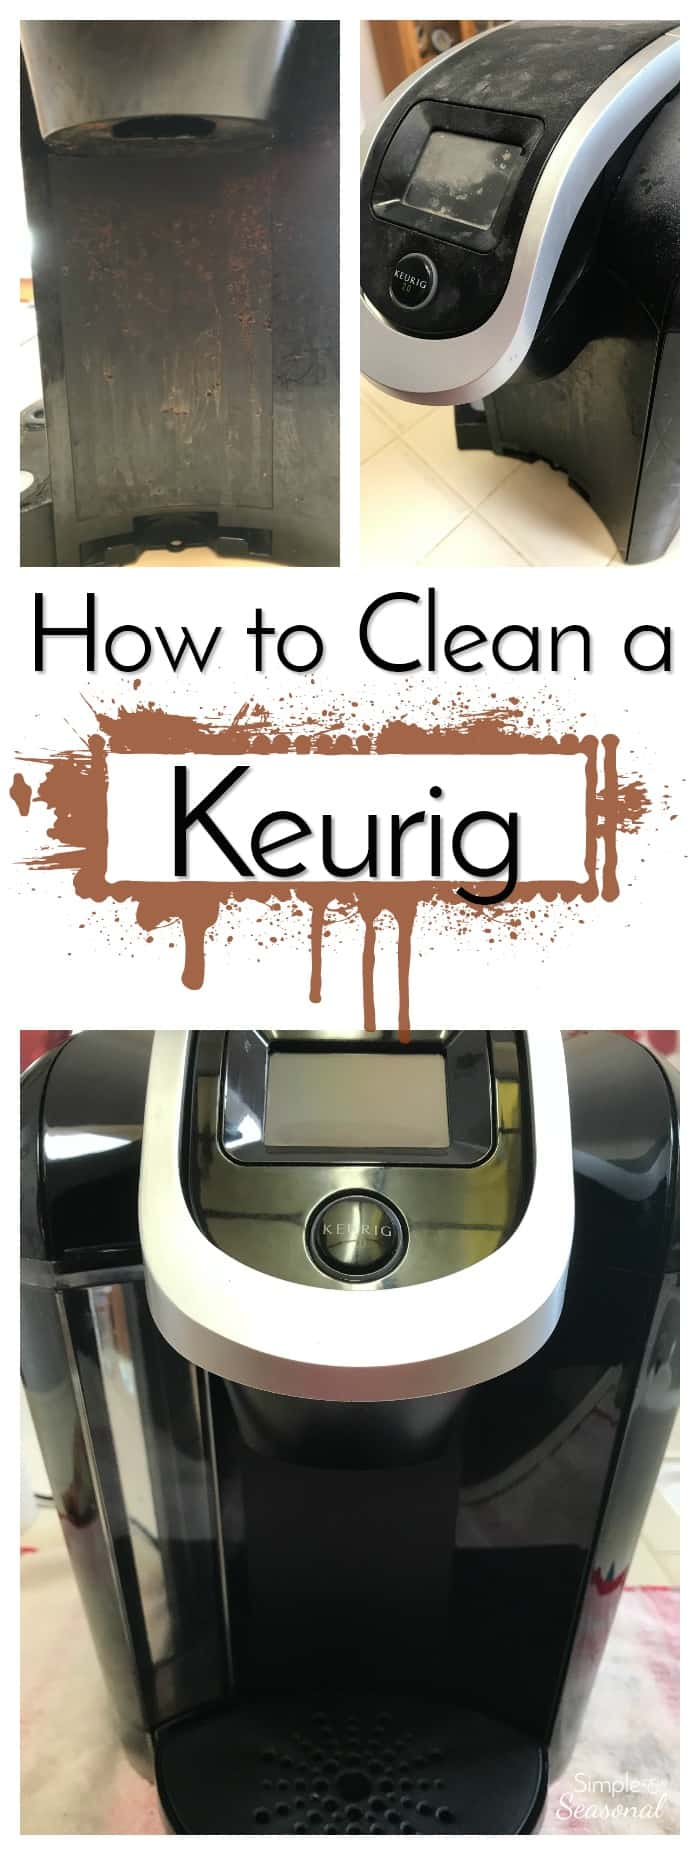 How To Deep Clean A Keurig Step By Step Photo Instructions Diy Cleaner